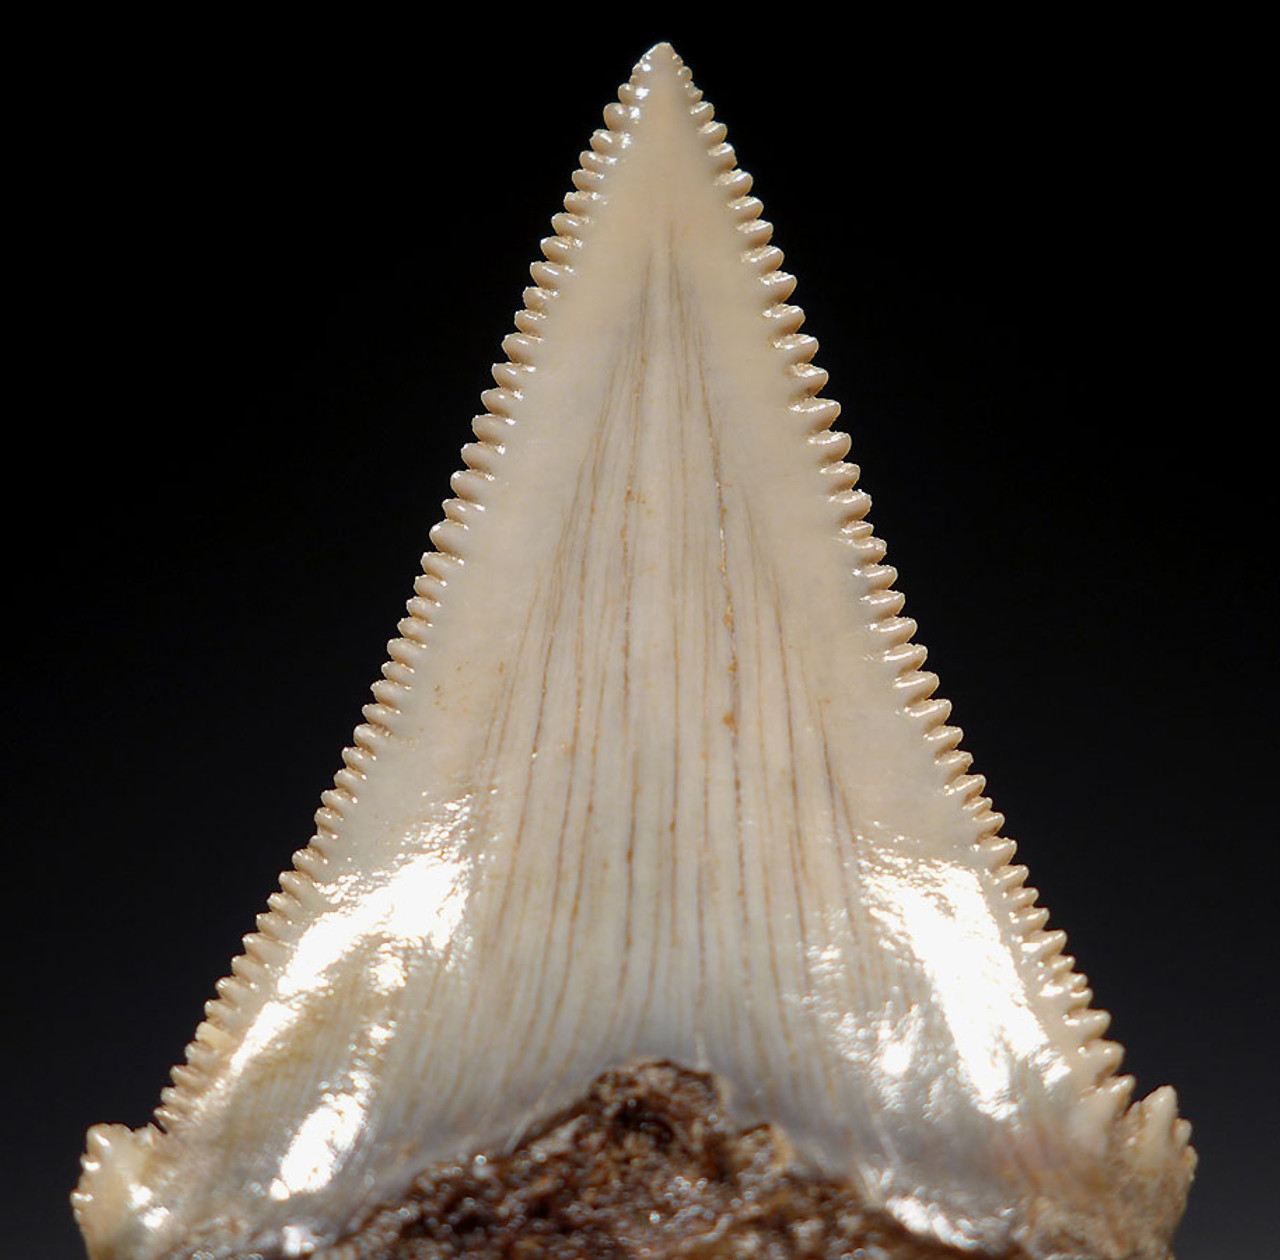 SHX049 - COLLECTOR GRADE CARCHAROCLES ANGUSTIDENS FOSSIL SHARK TOOTH FROM THE LOWER JAW